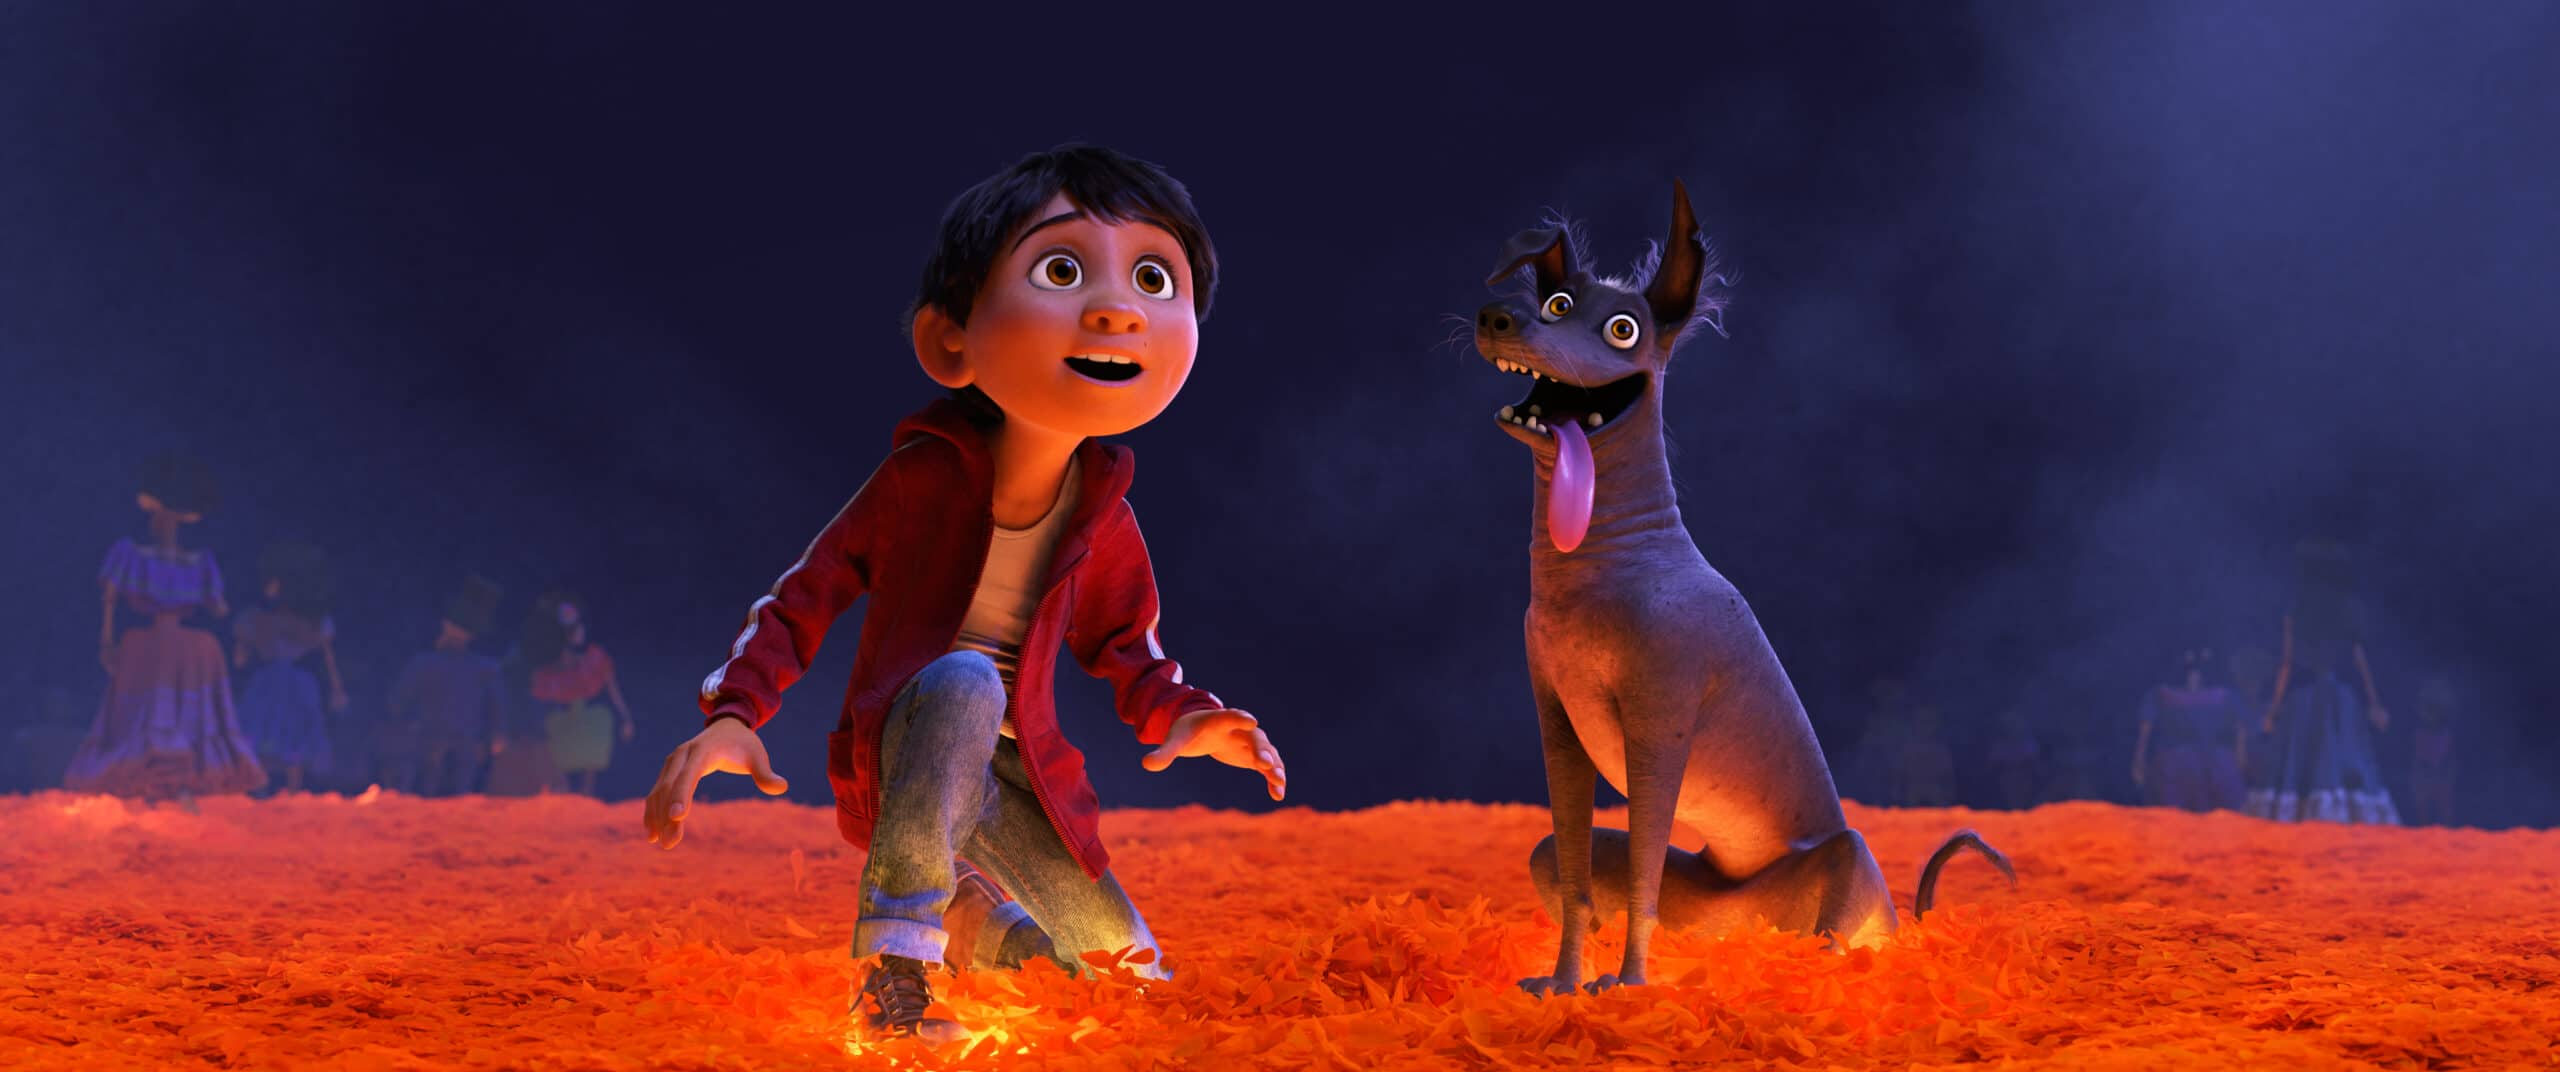 Disney·Pixar's COCO – New Teaser Trailer Now Available